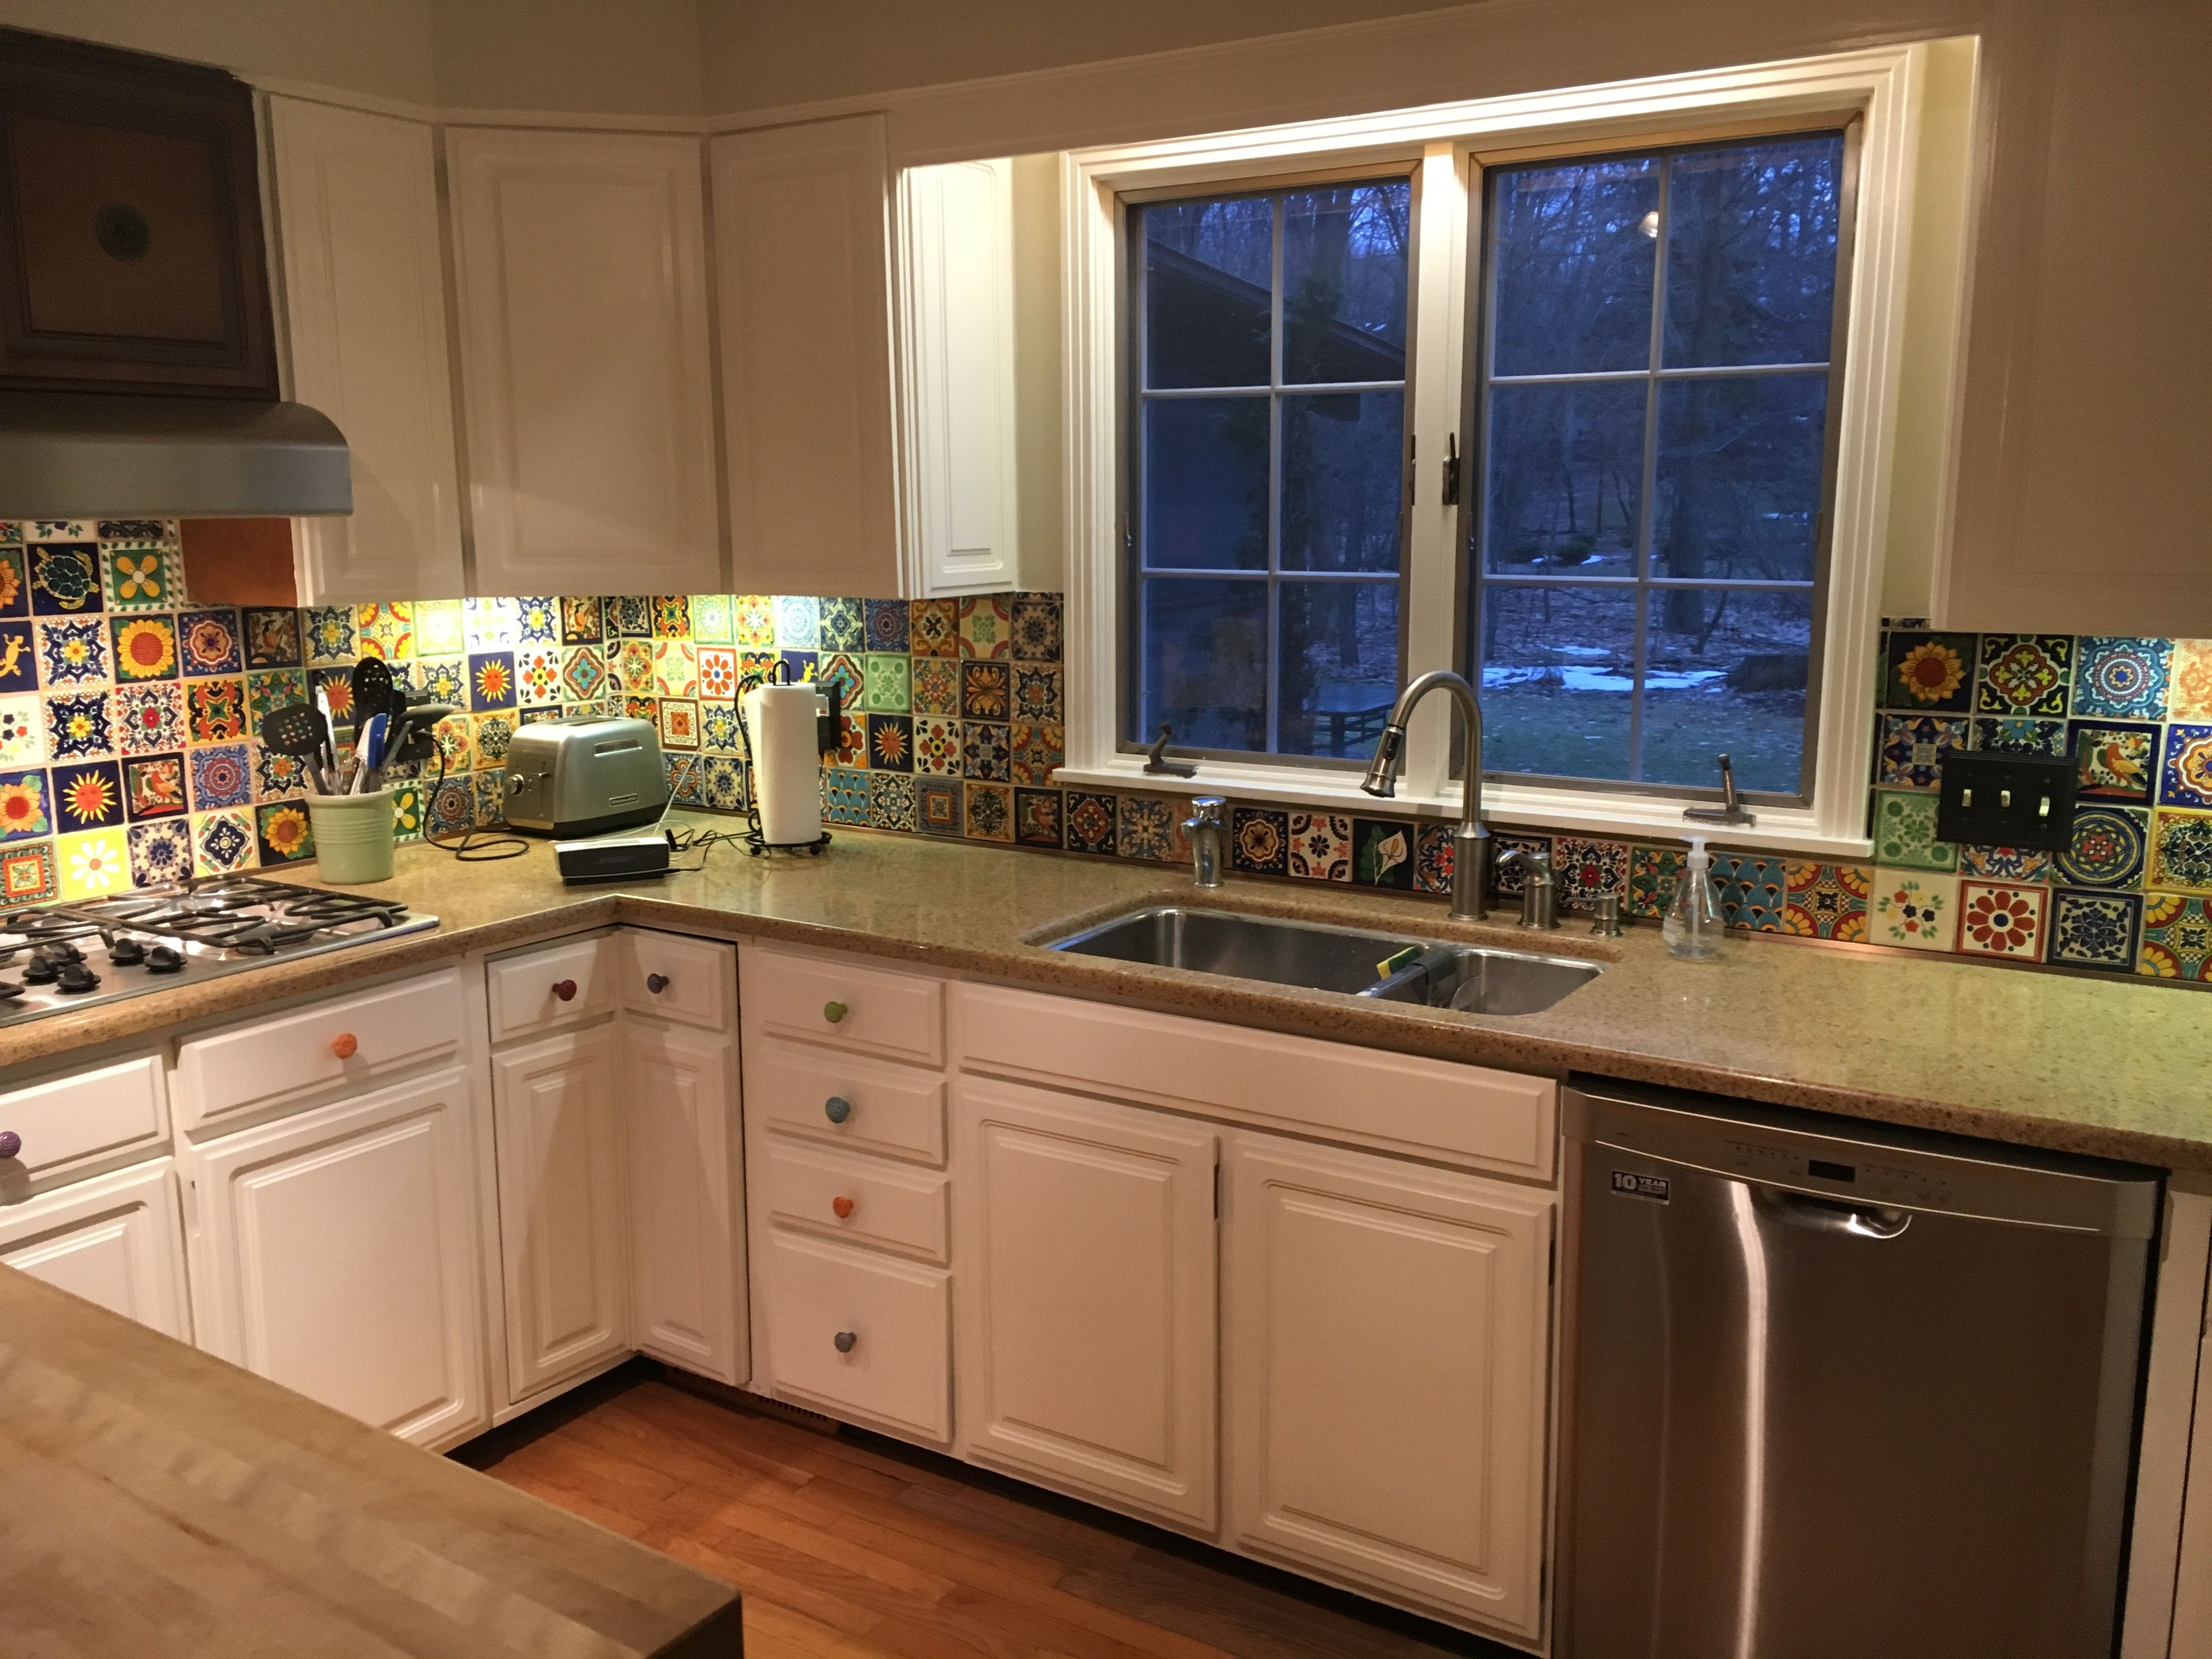 My Mexican Tile Backsplash | Kitchen cabinets, Mexican ...